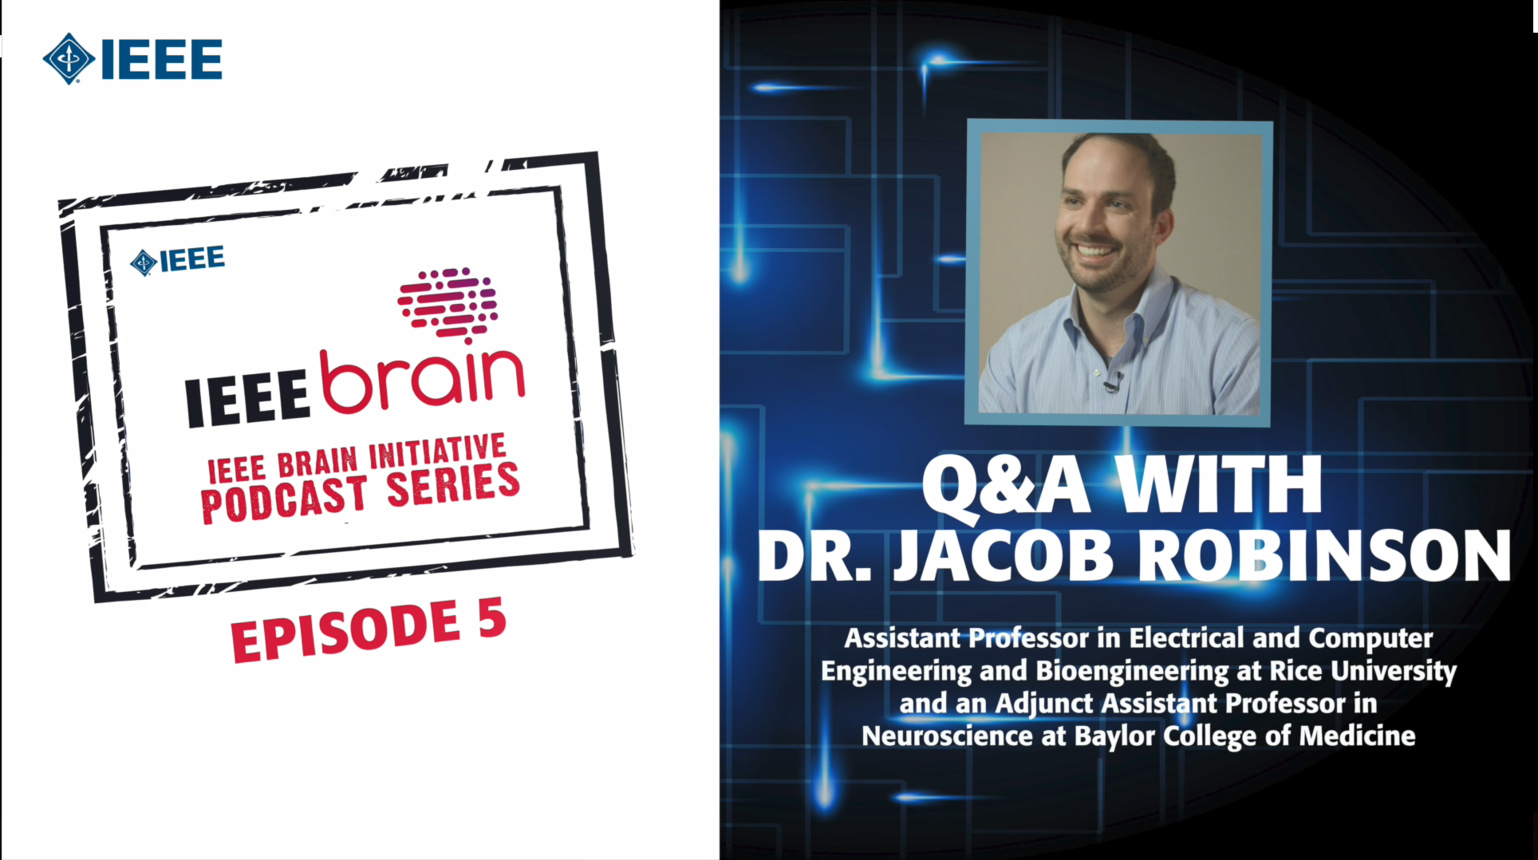 Q&A with Dr. Jacob Robinson: IEEE Brain Podcast, Episode 5